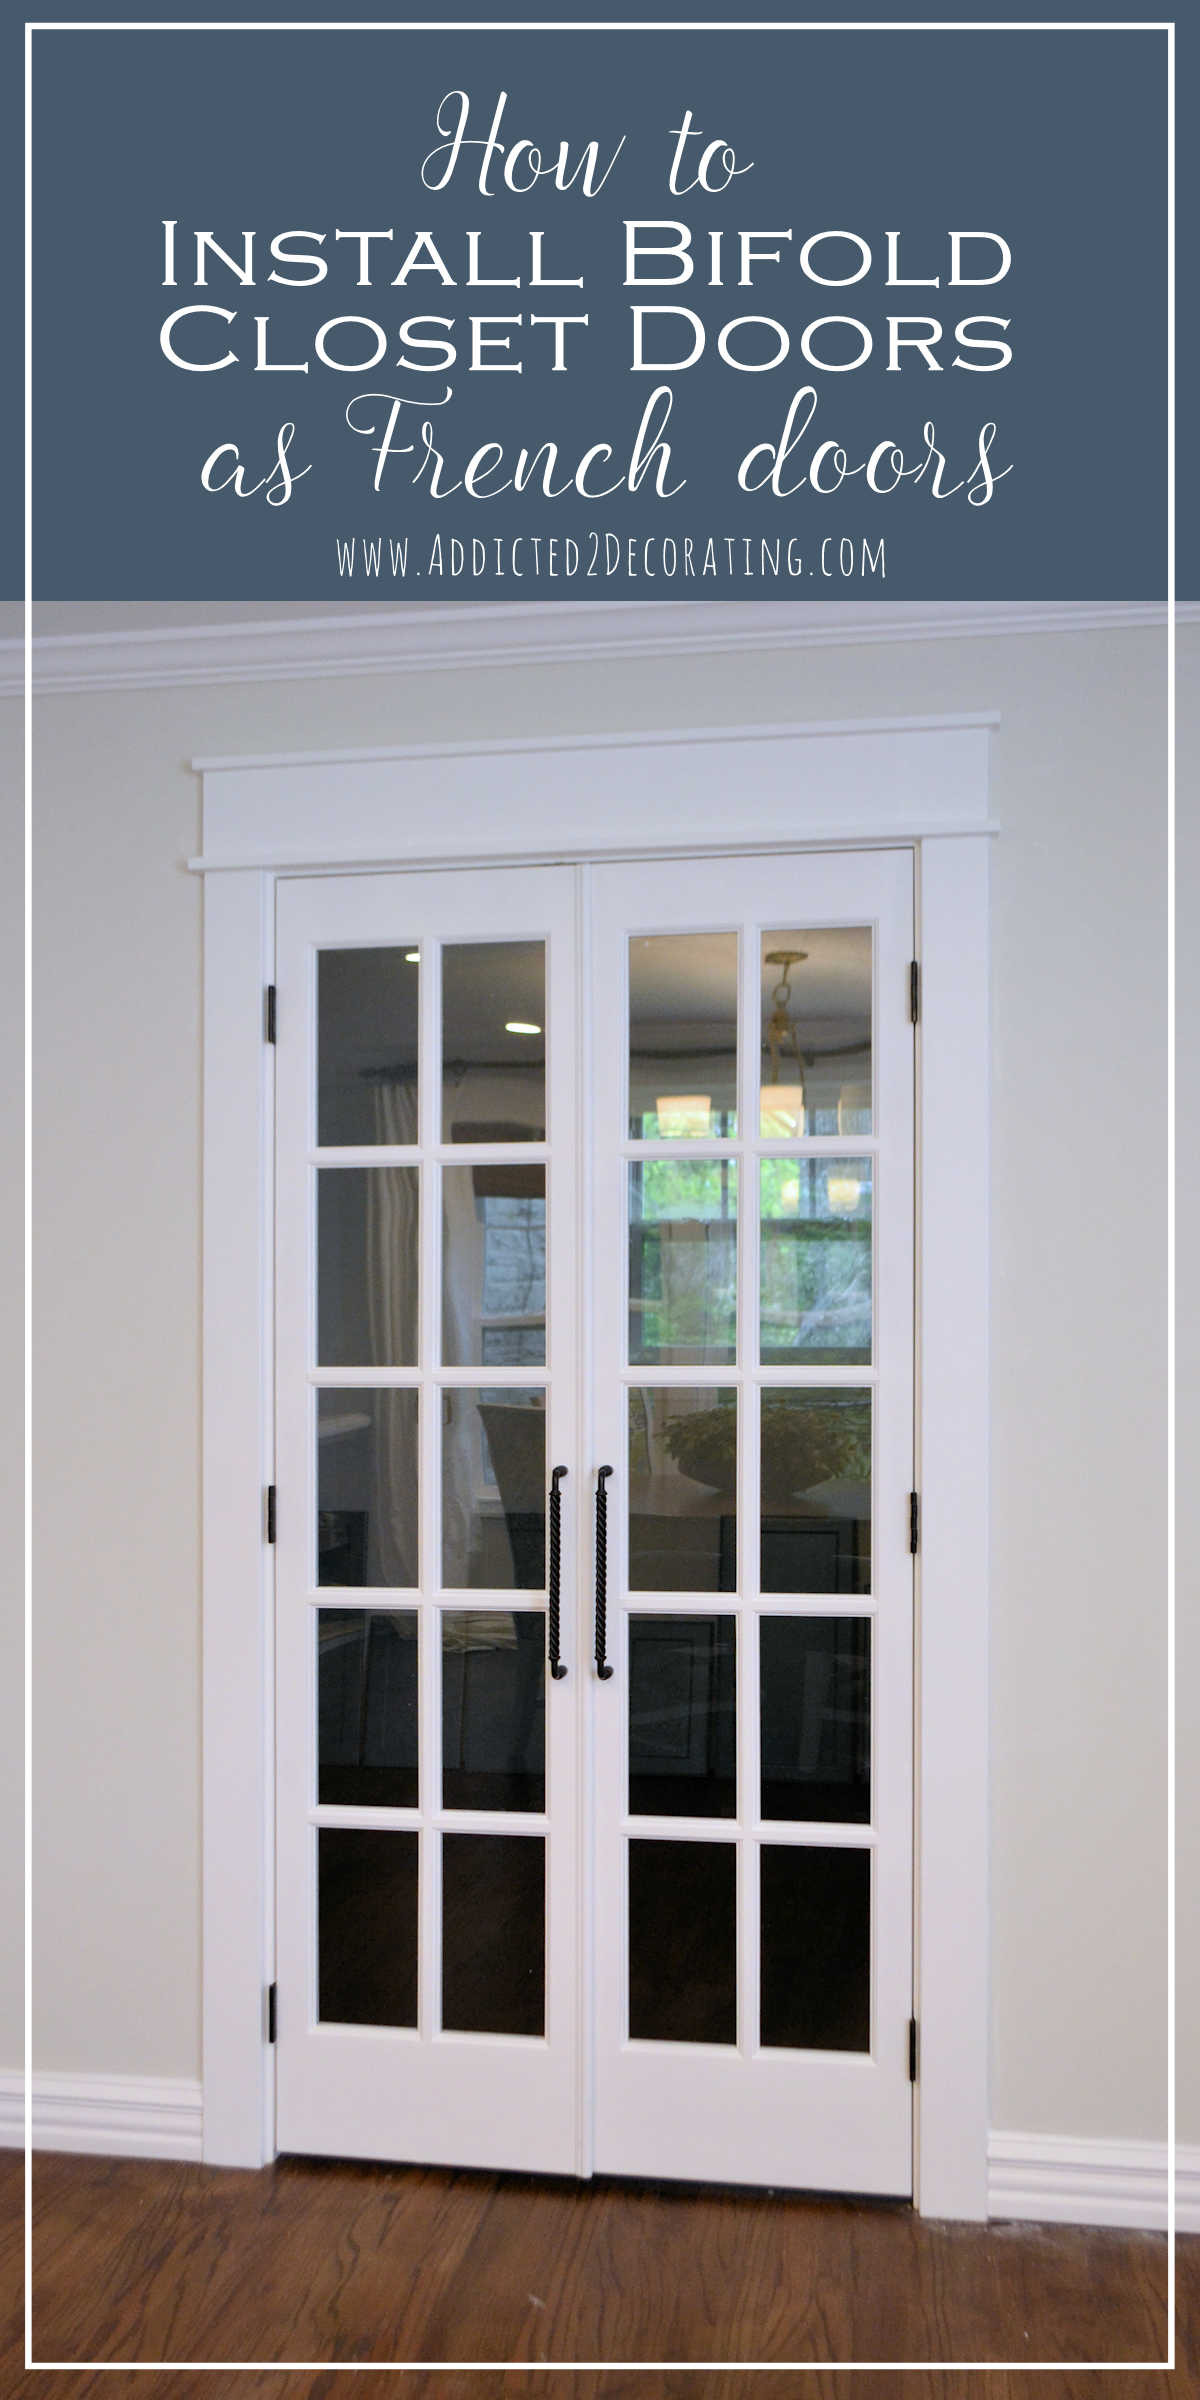 how to install bifold closet doors as french doors